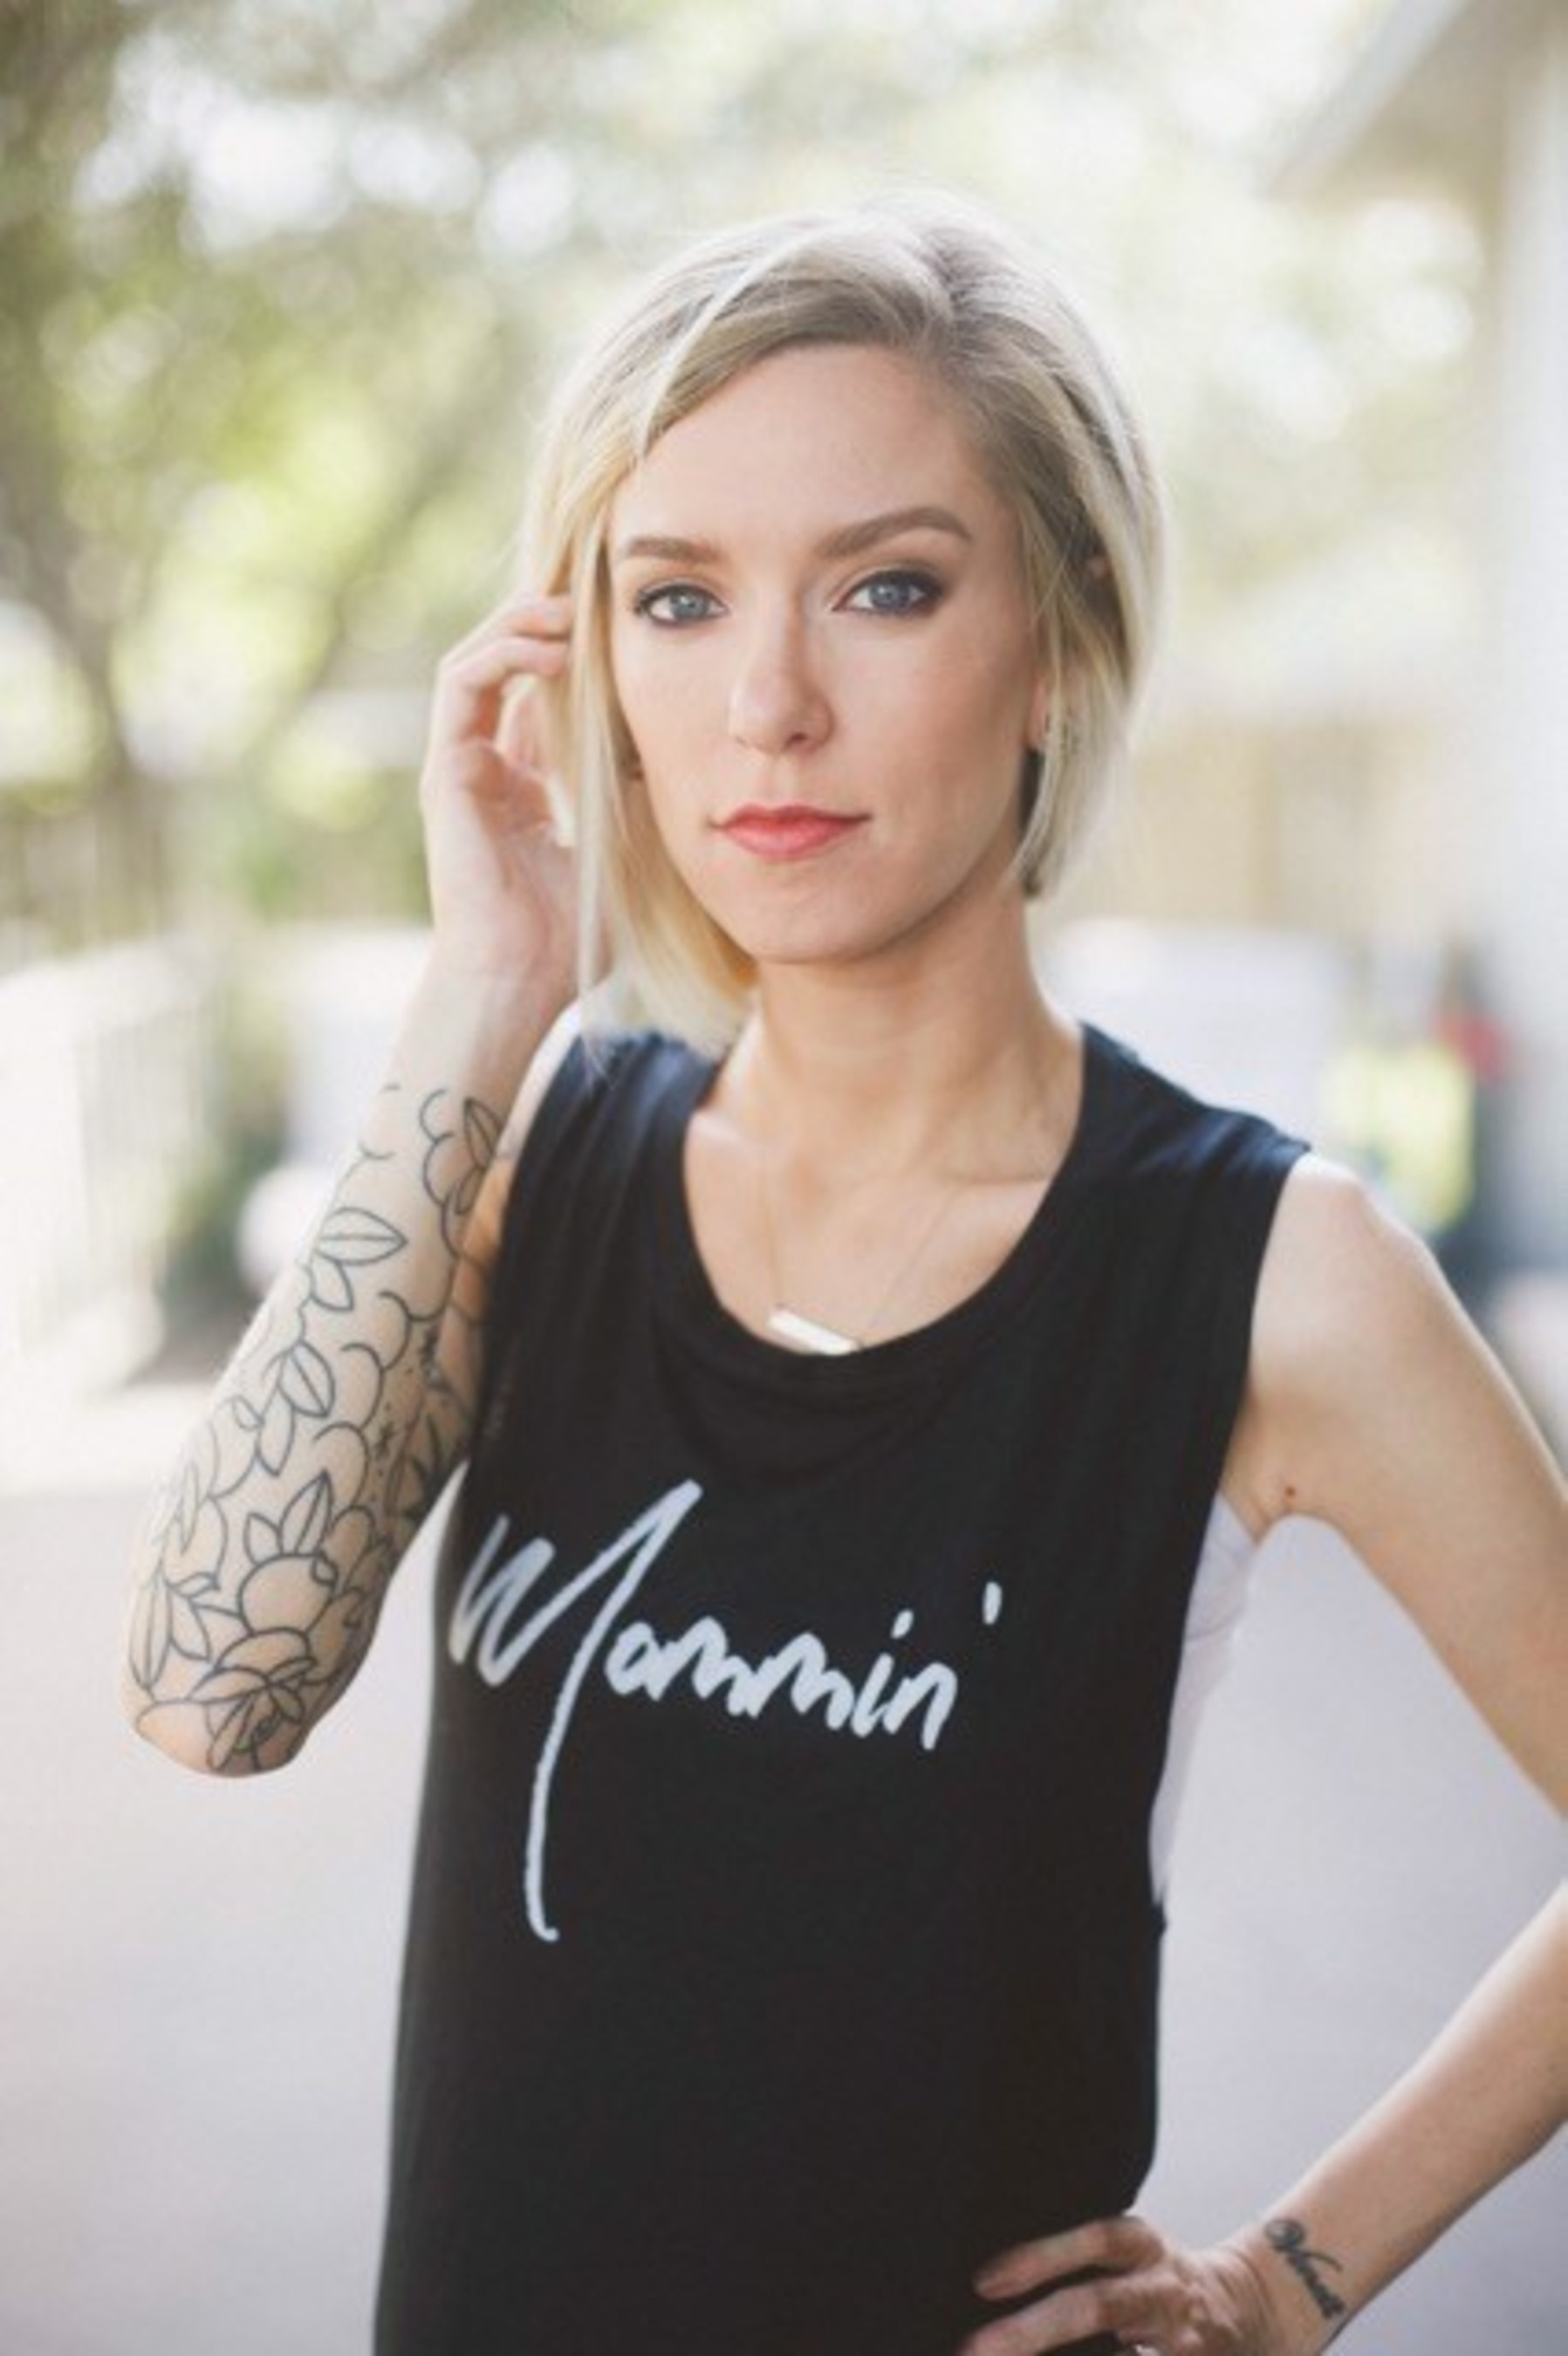 Aleah Shop Launches Their Summer Clothing Collection of Graphic Tees for Girl Bosses & Mom Life